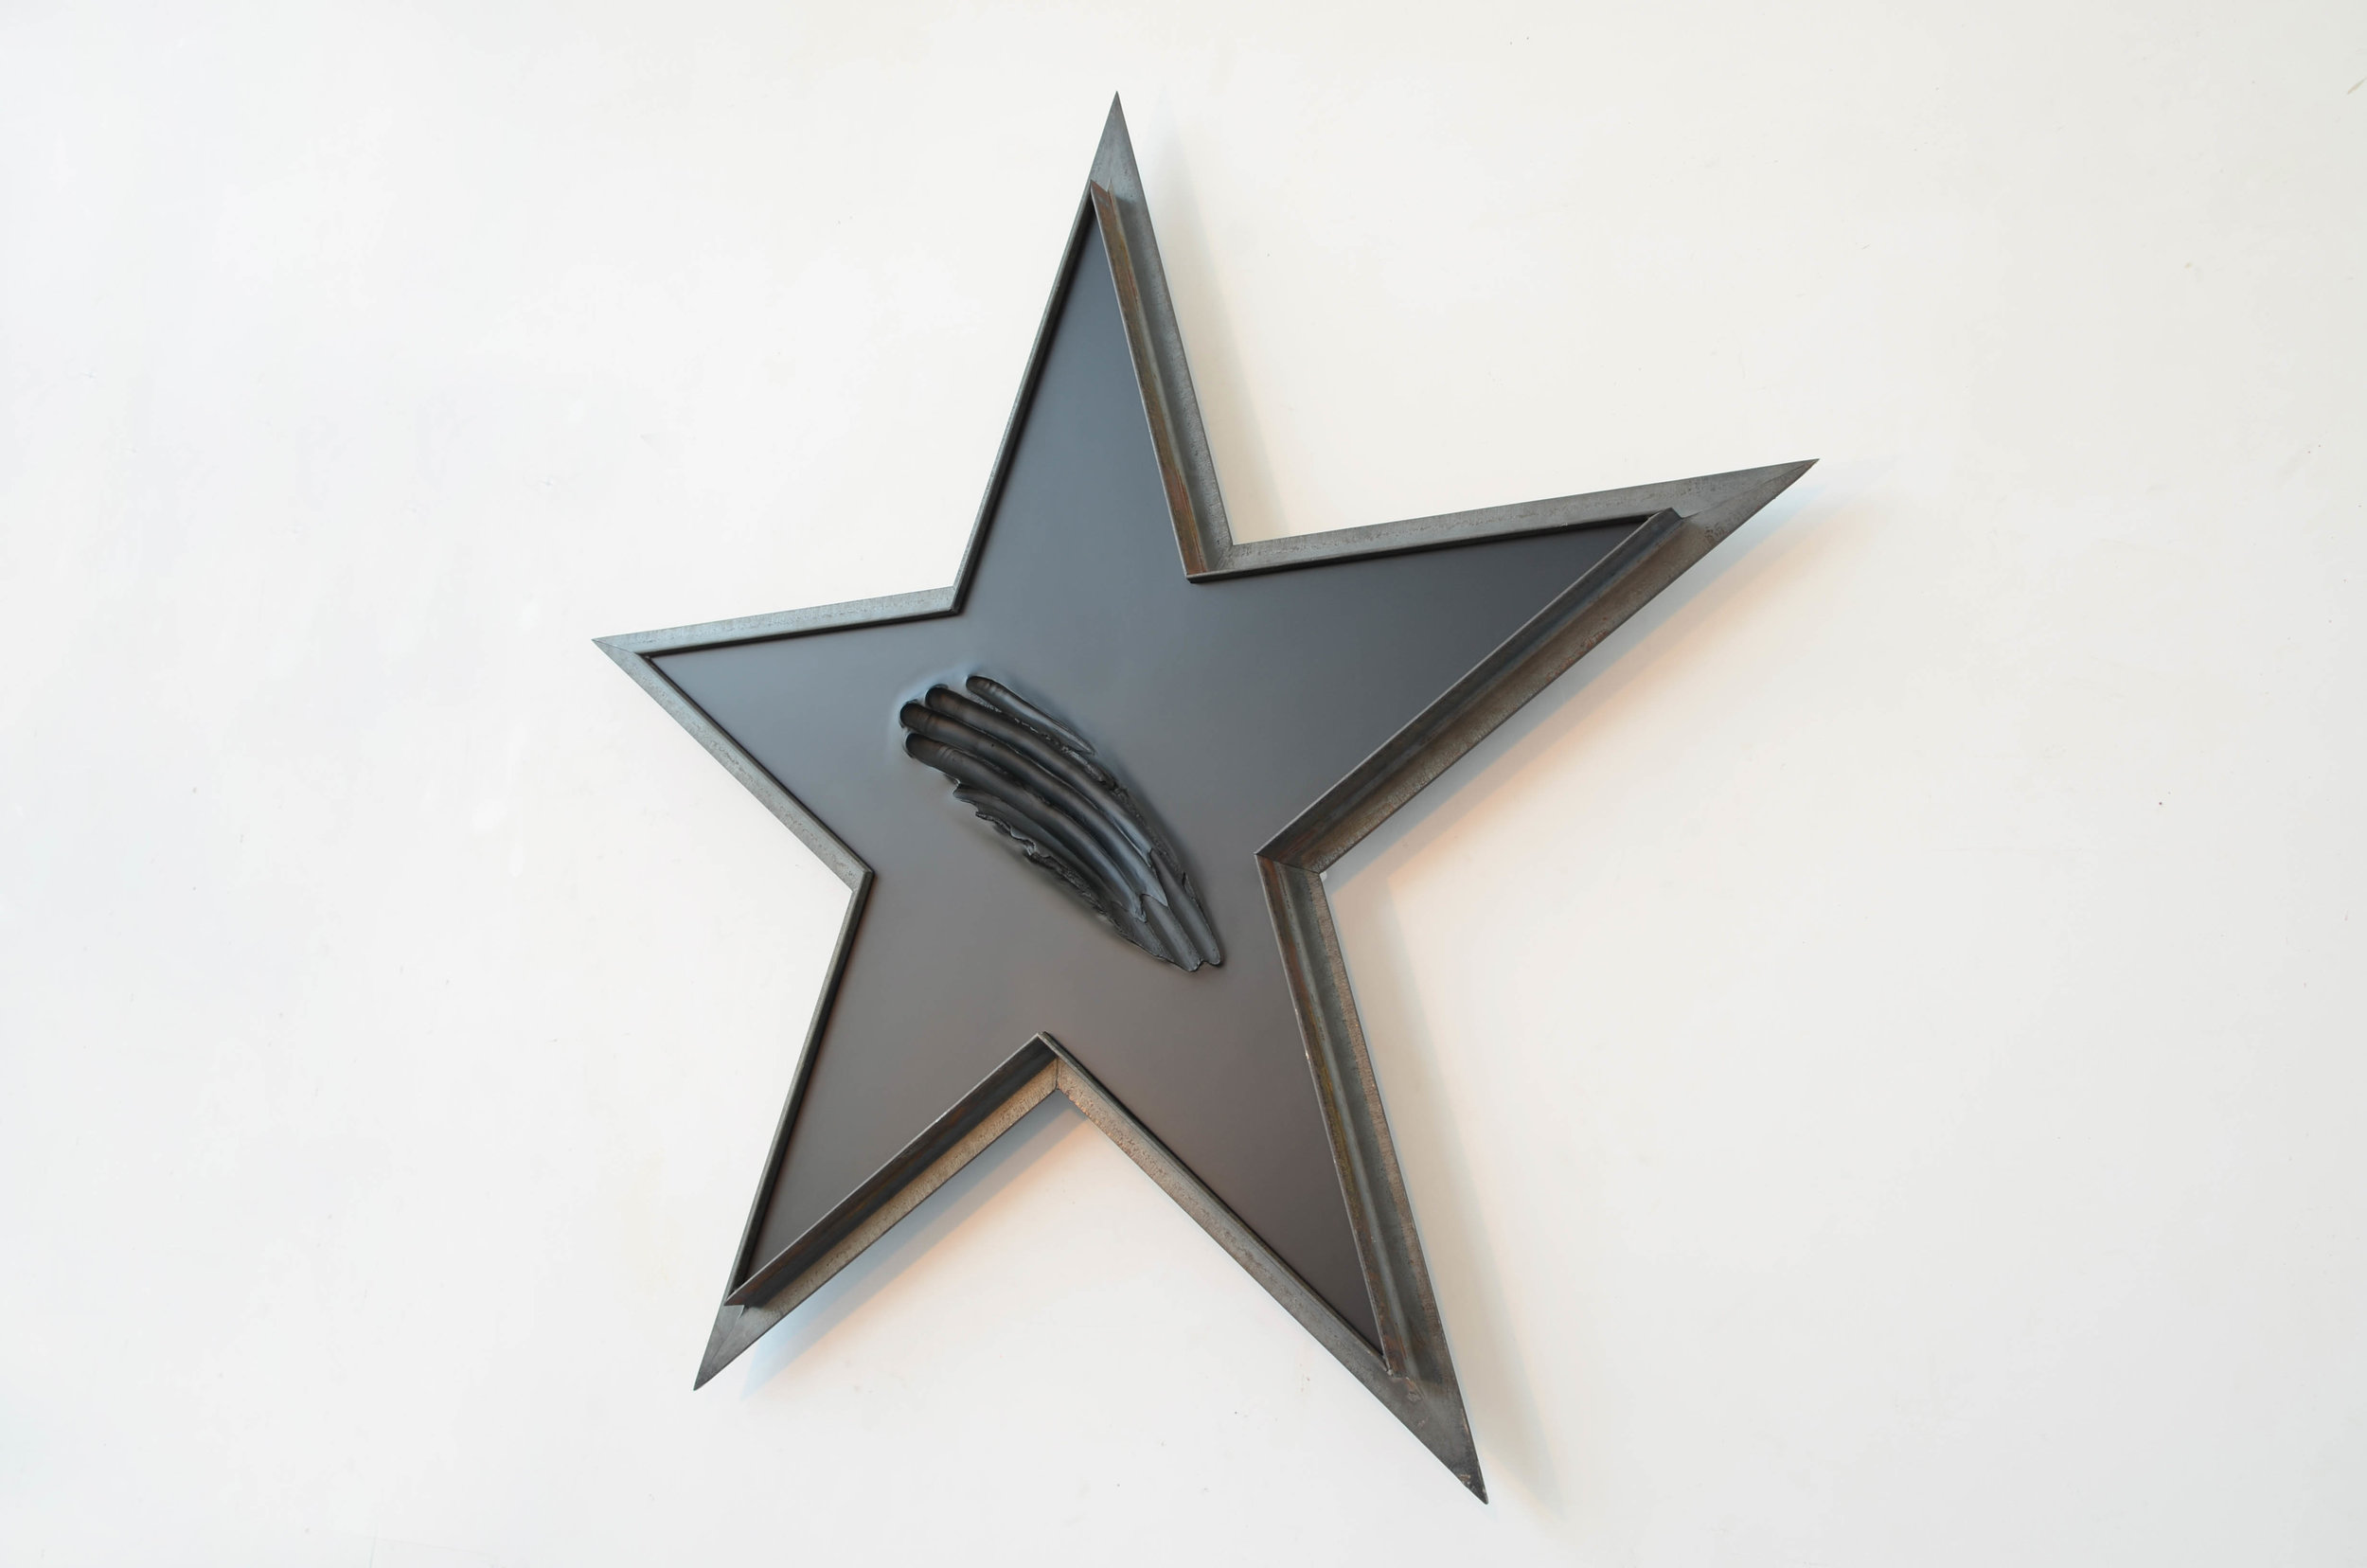 superstar (2015-2016) iron, resin, wood, 100 (h) x105x7 cm